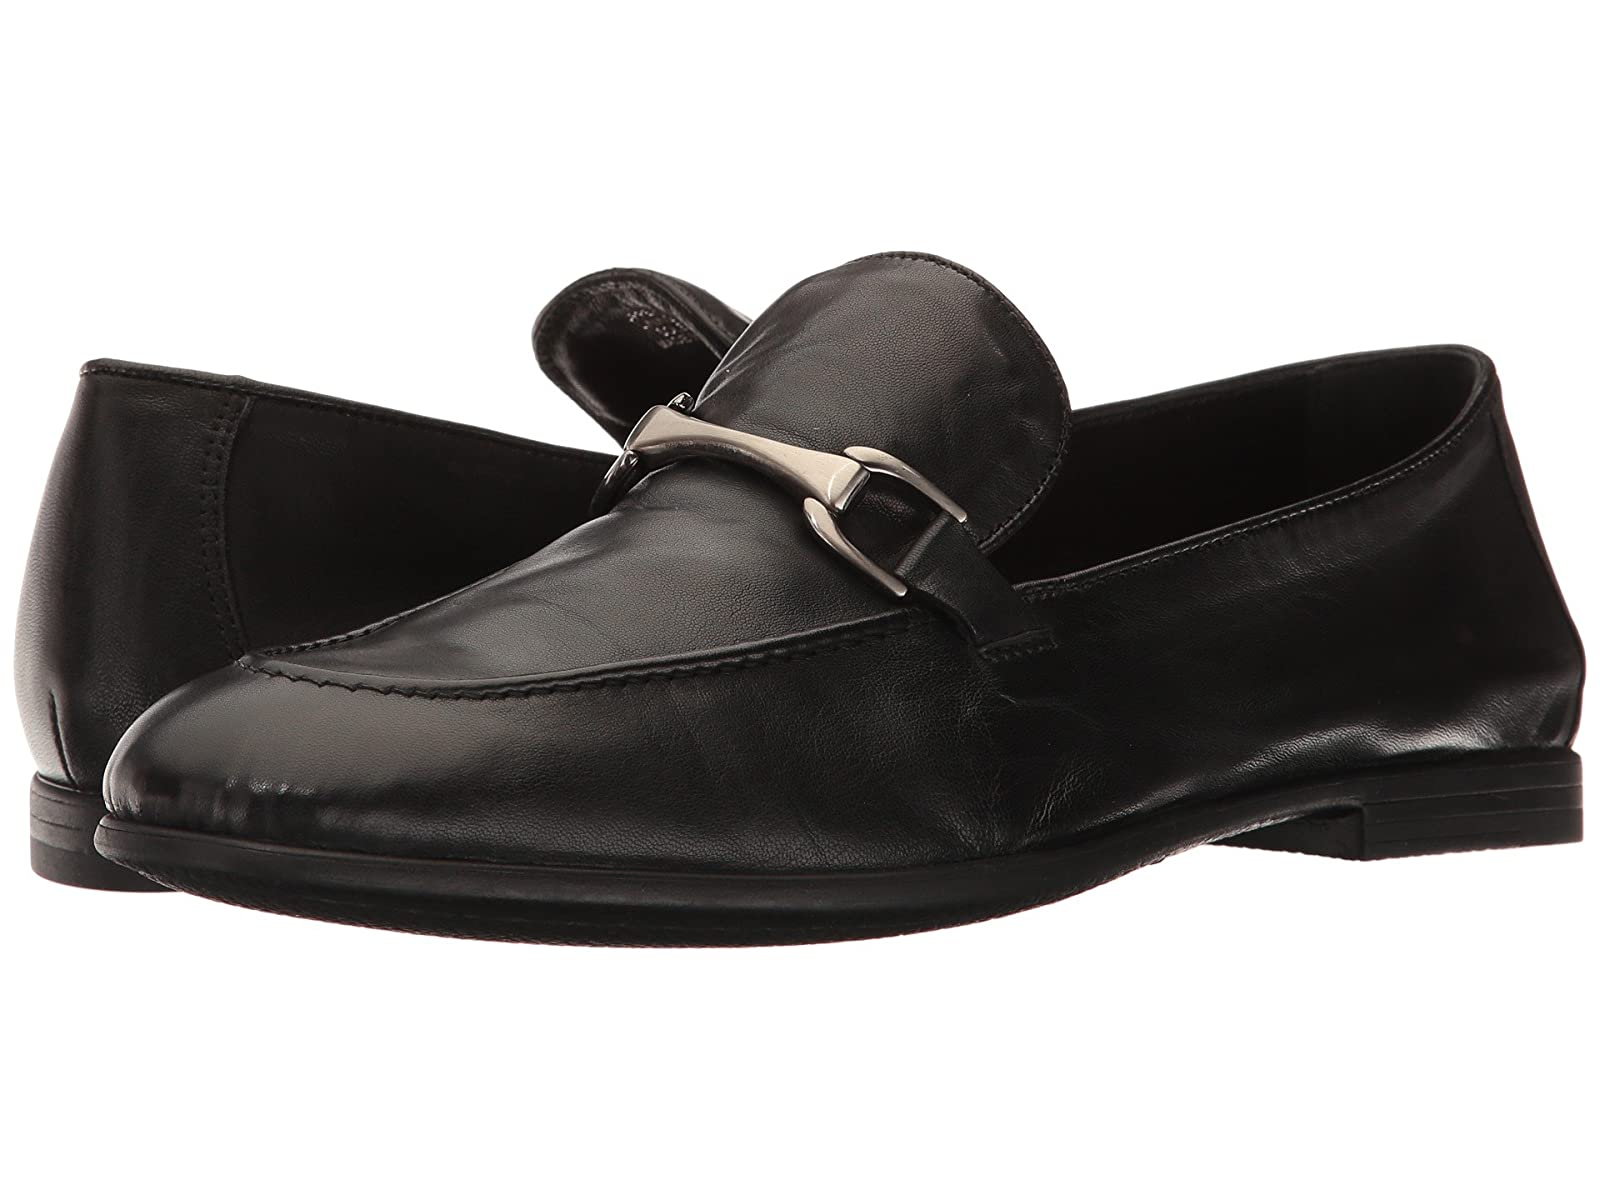 Vince Camuto DallyAtmospheric grades have affordable shoes